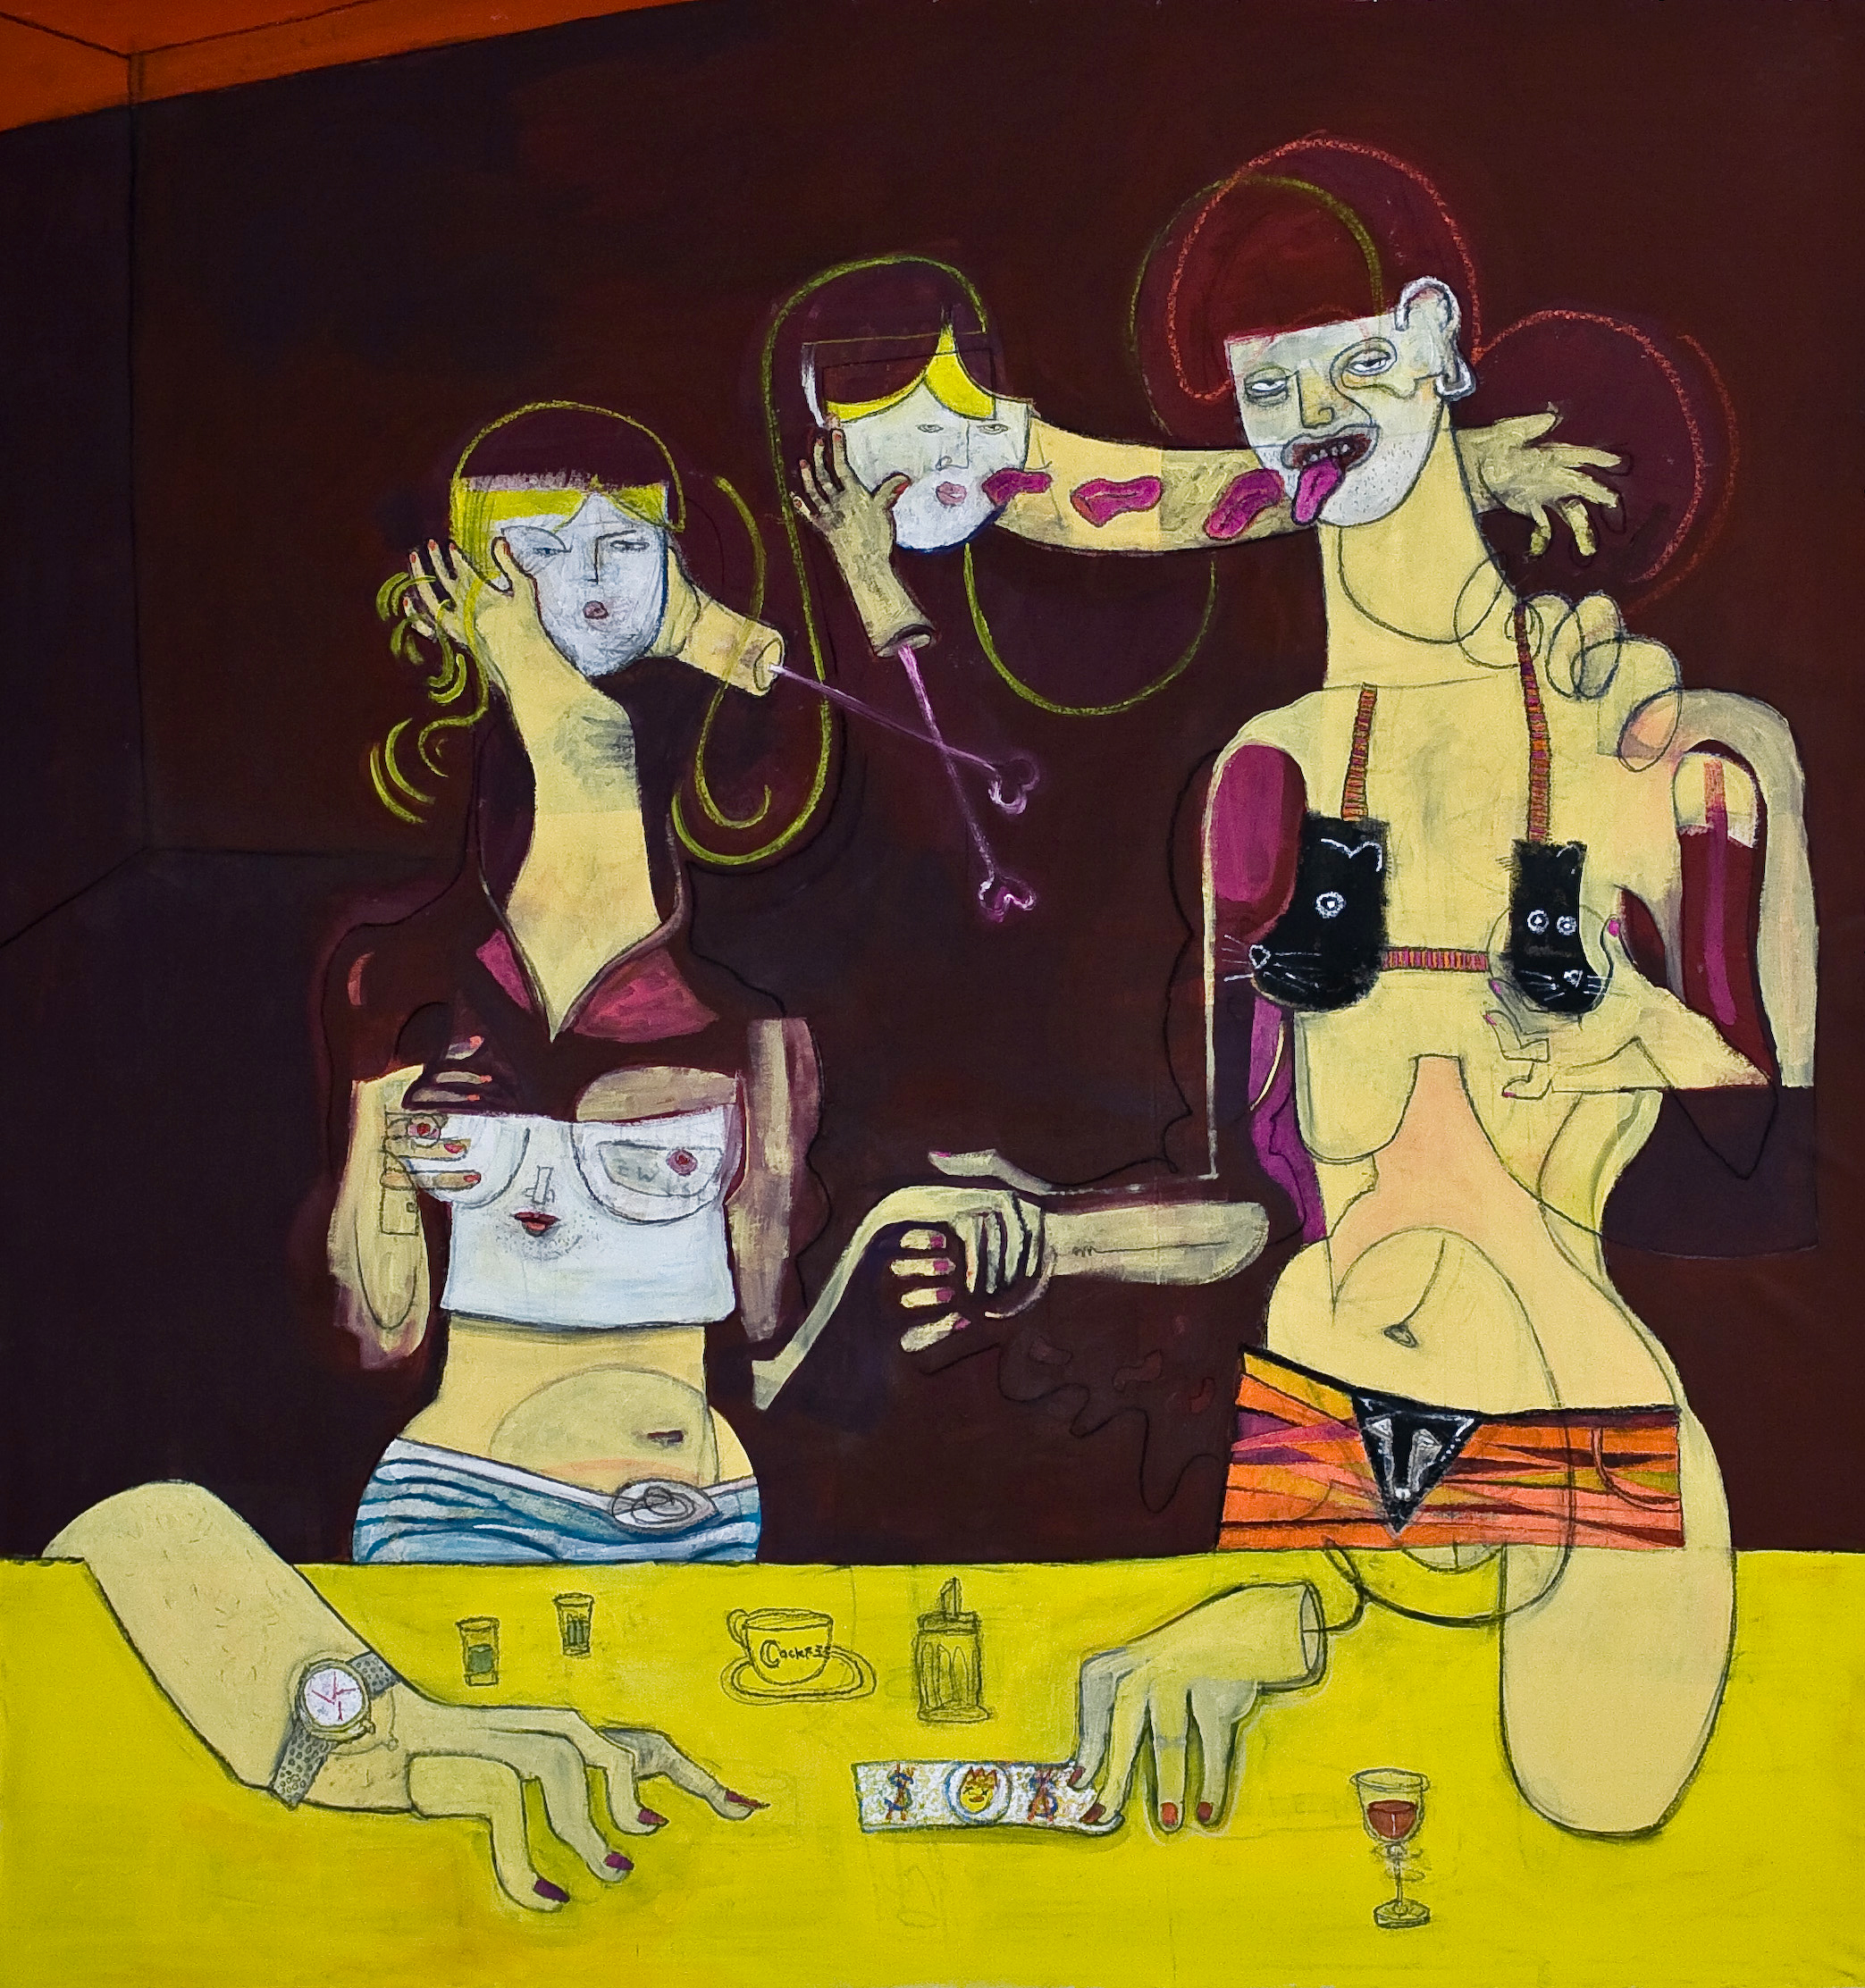 PRELUDE TO A KISS-150X160Cm-59x63In-AC-BERLIN-2013